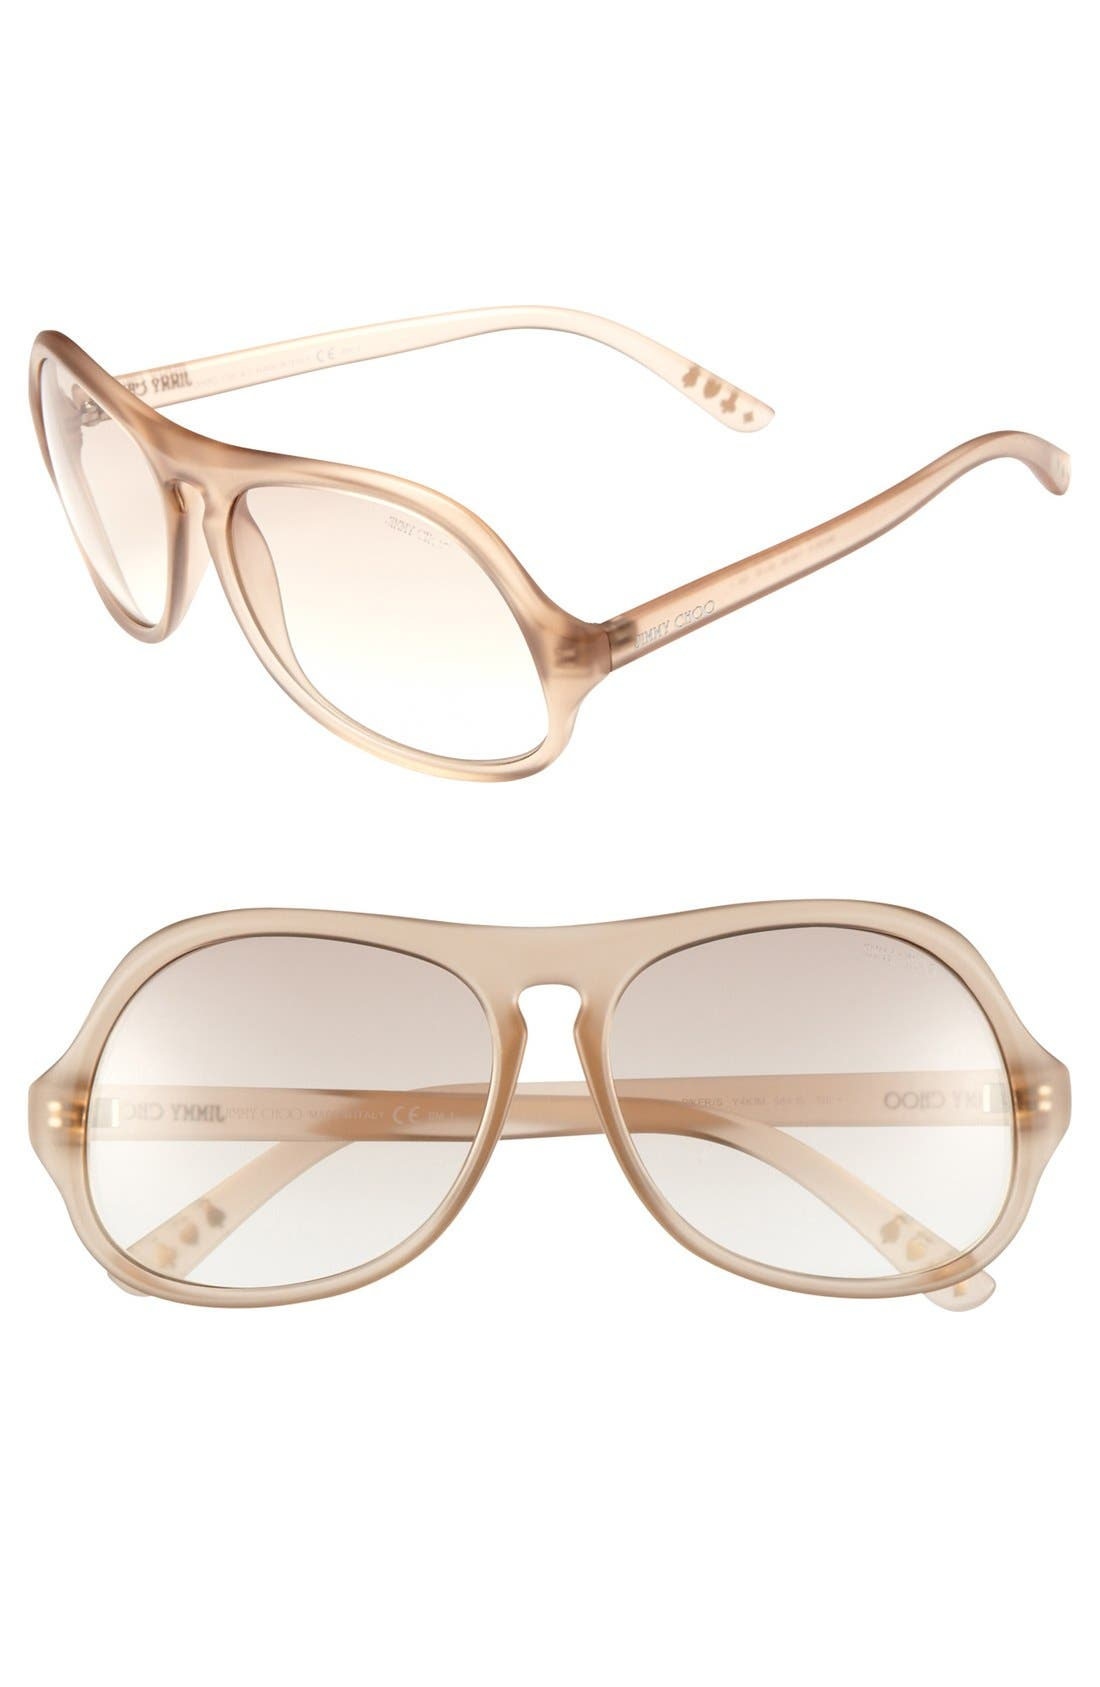 Alternate Image 1 Selected - Jimmy Choo 'Biker' Oversized Sunglasses